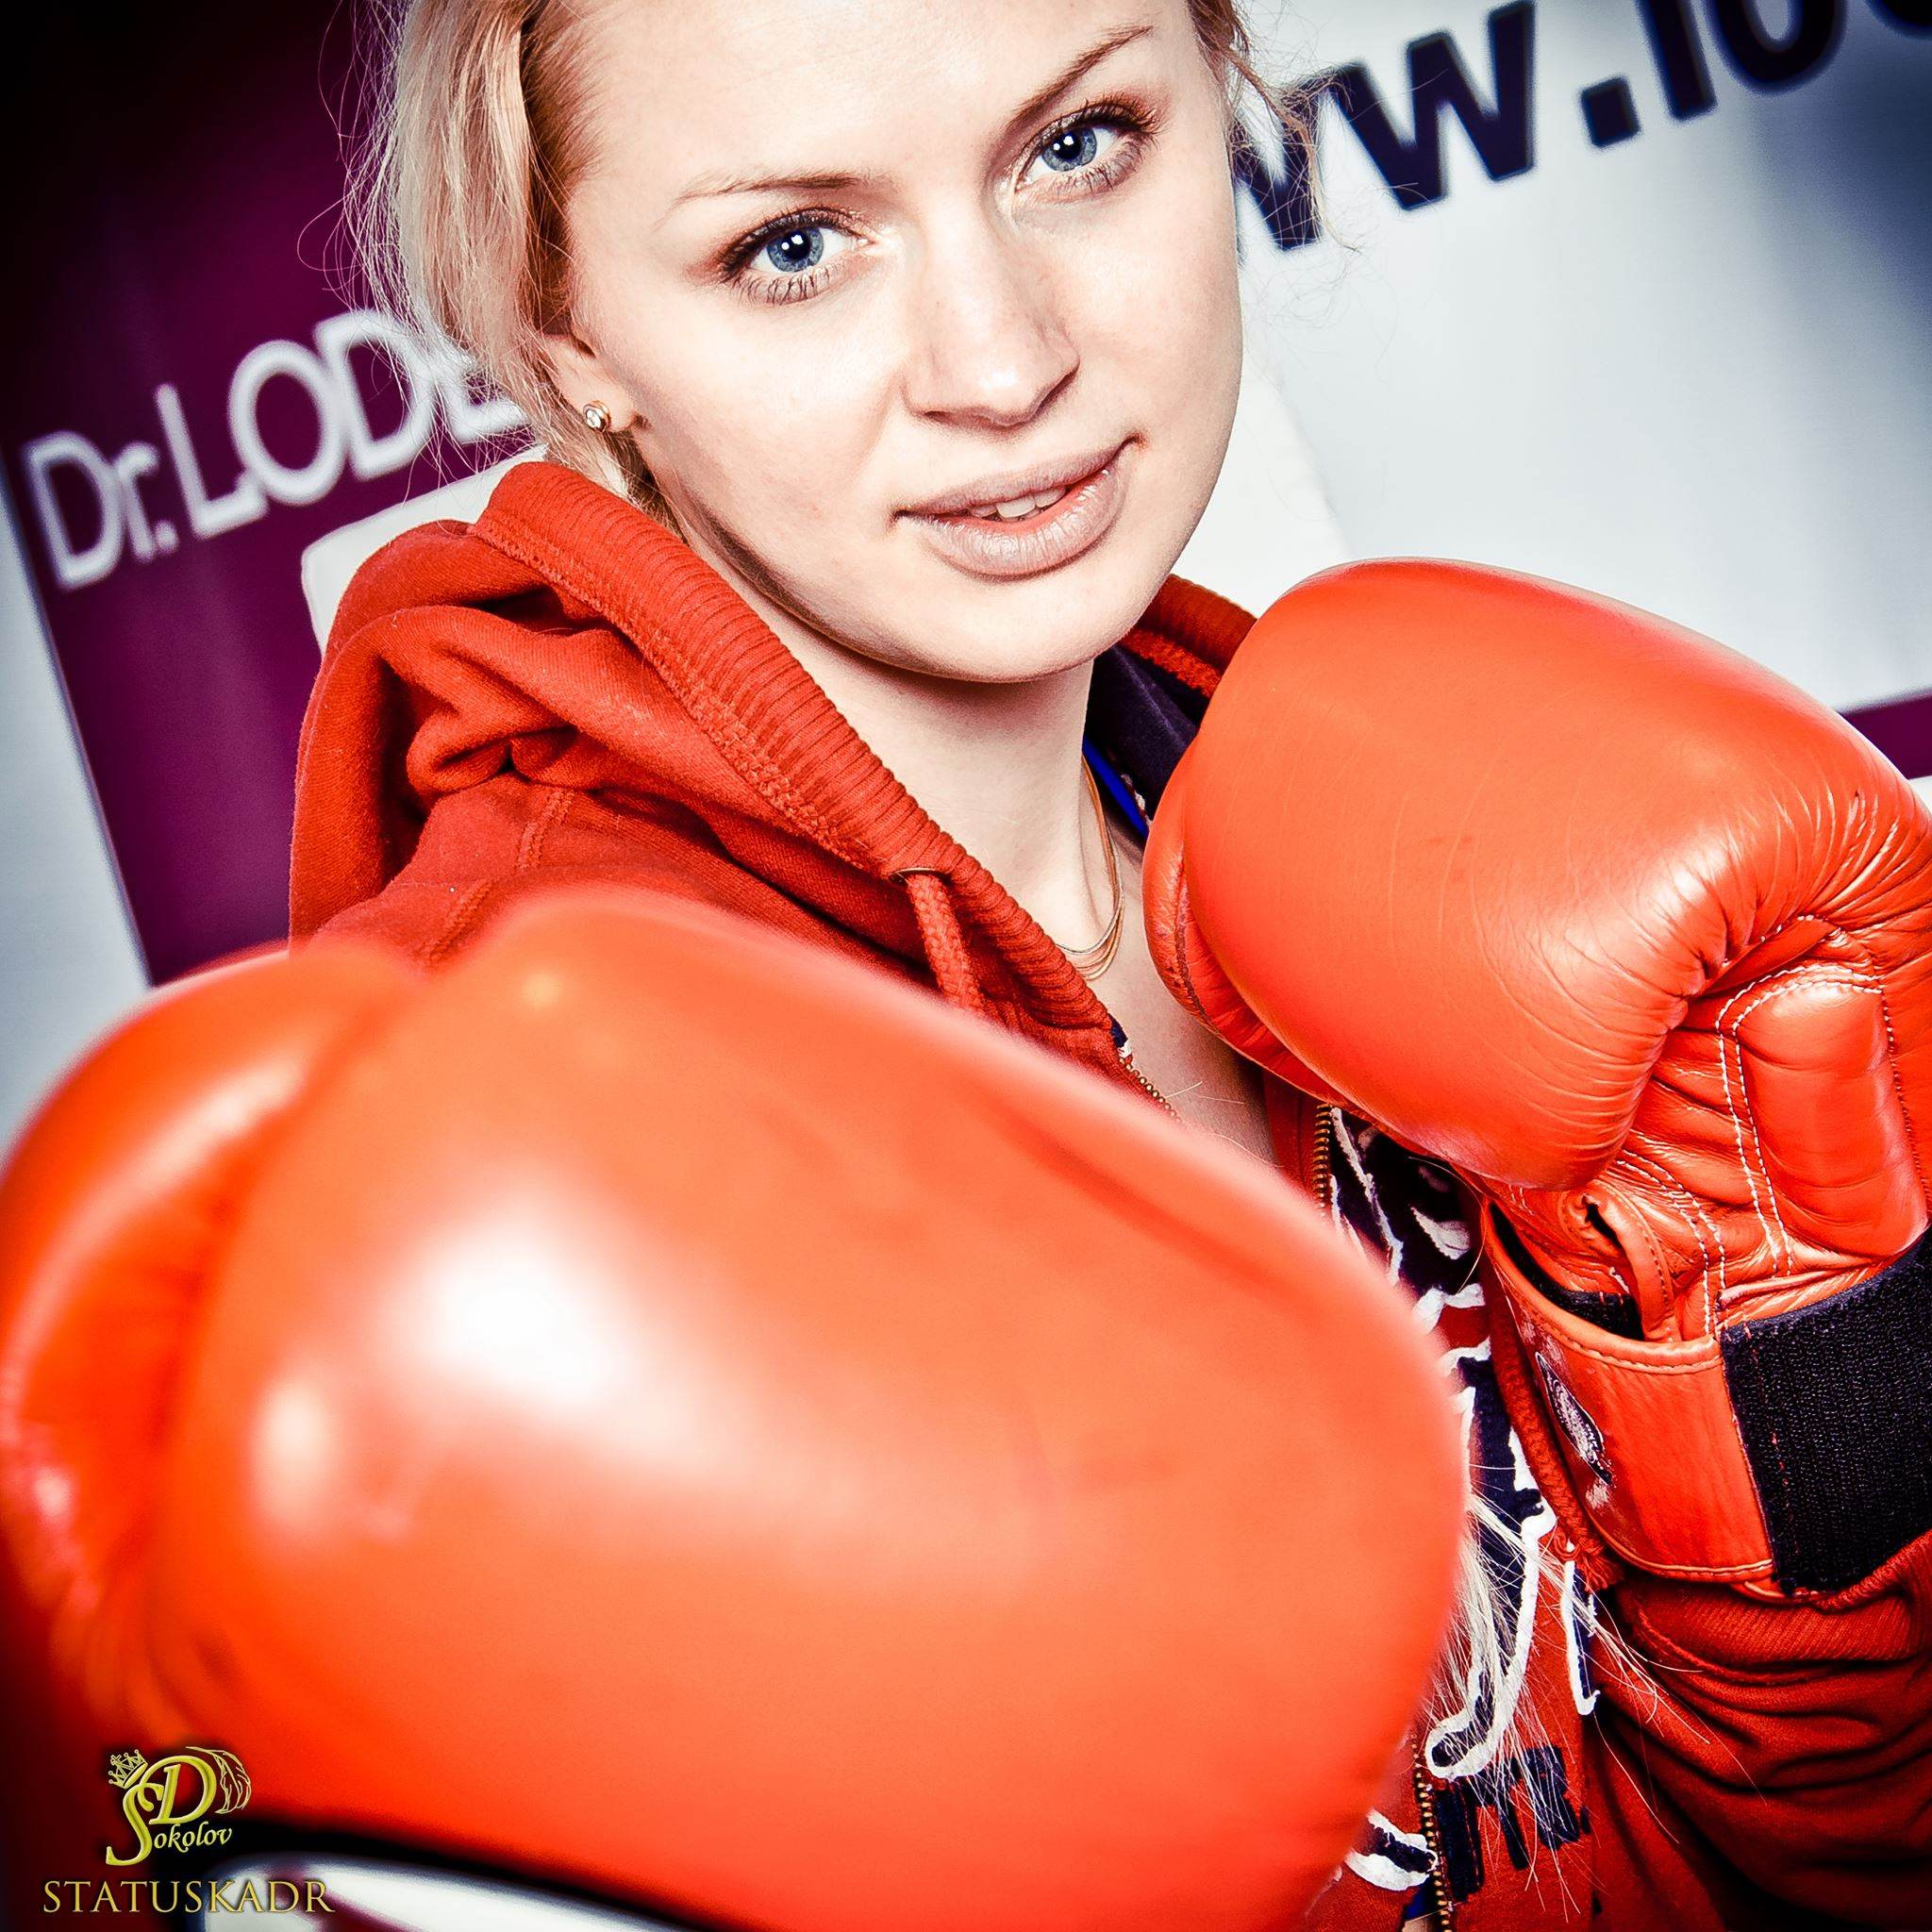 foto See also: List of female boxers and List of female mixed martial artists